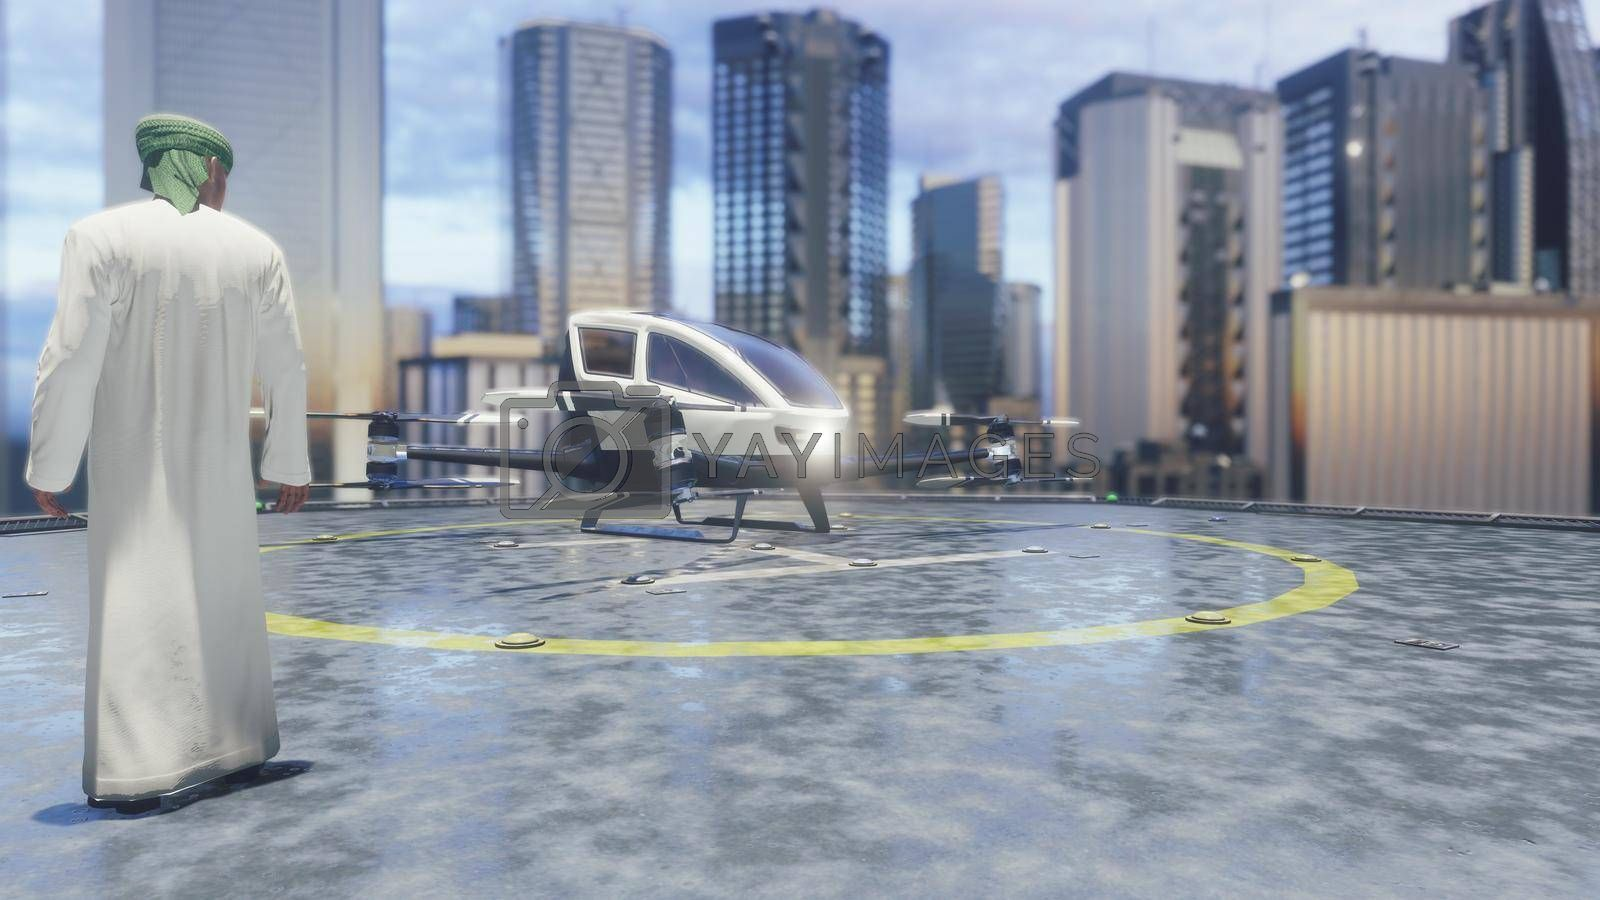 Pilotless passenger taxi makes a departure for the call of the client. The concept of the future unmanned air taxi.